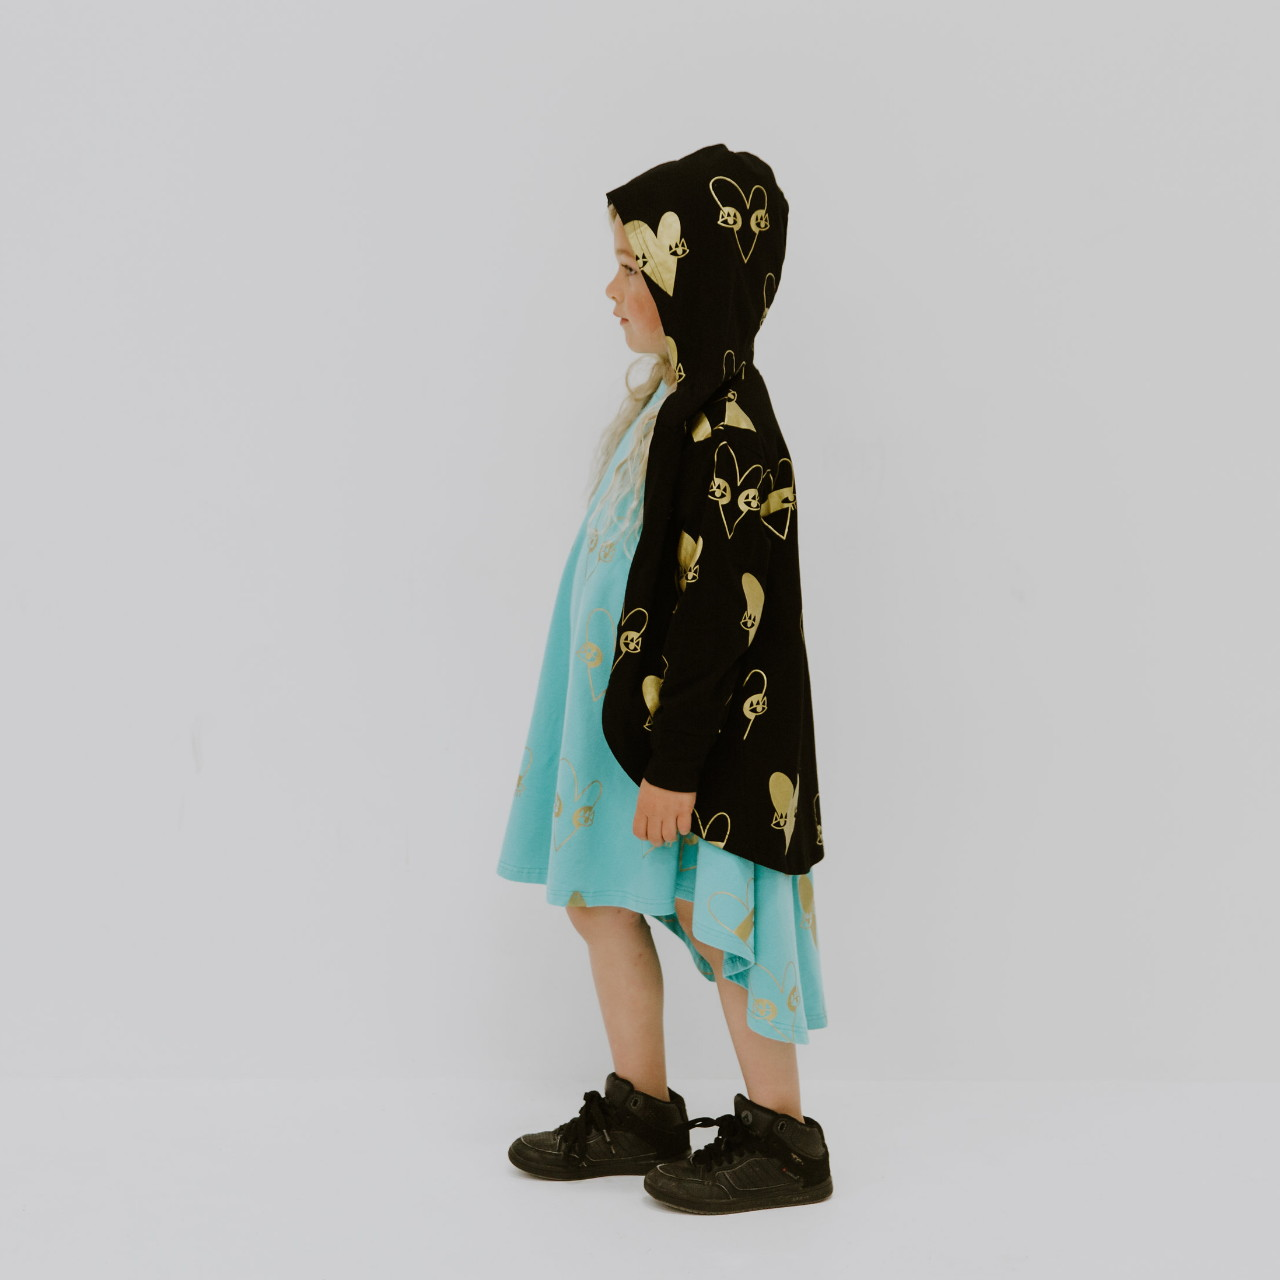 Amazing cardy by Punk Baby with metallic gold heart print